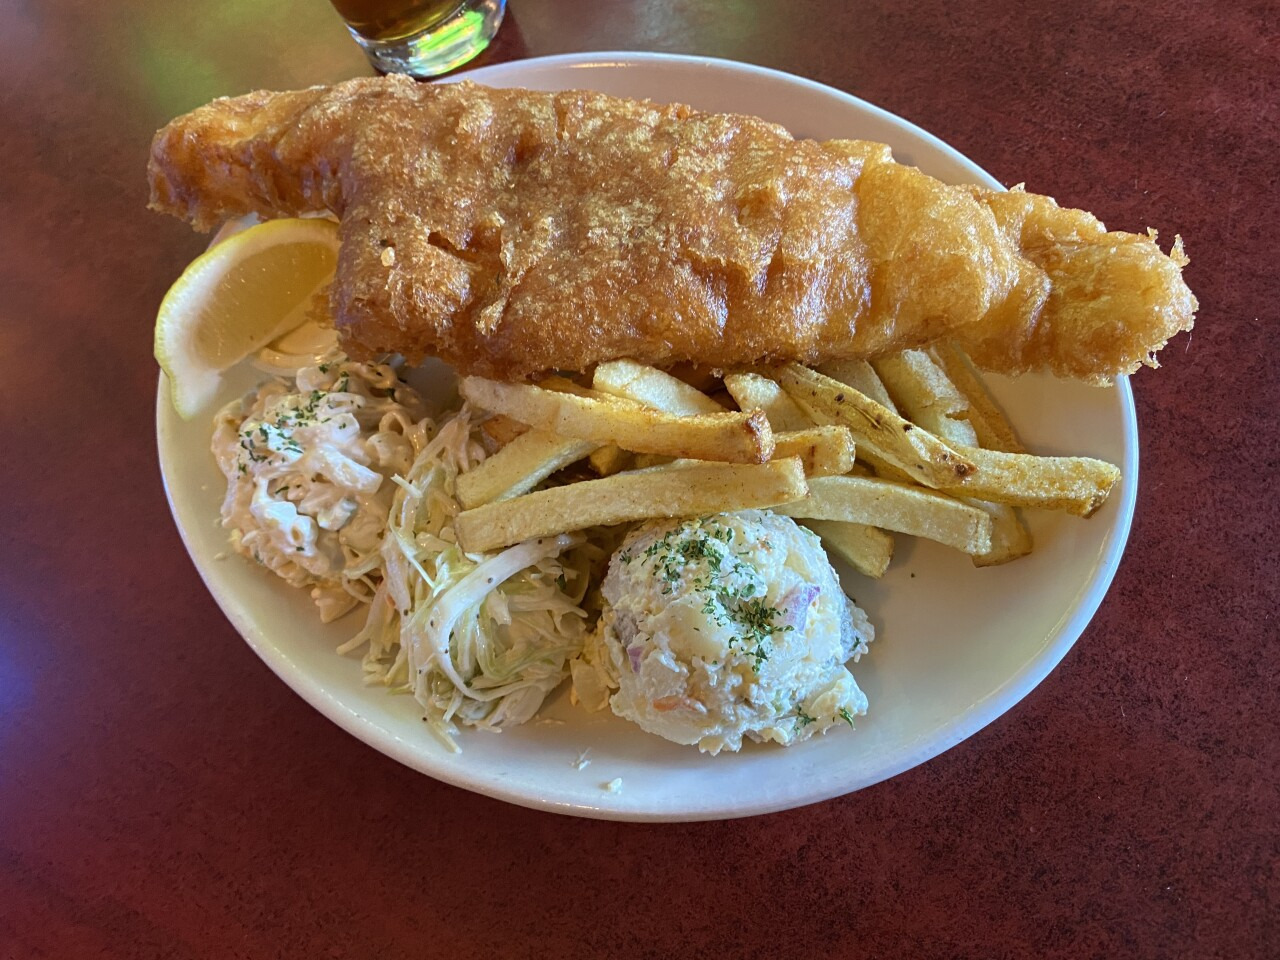 Fish Fry Friday at Gene McCarthy's is even more popular during pandemic